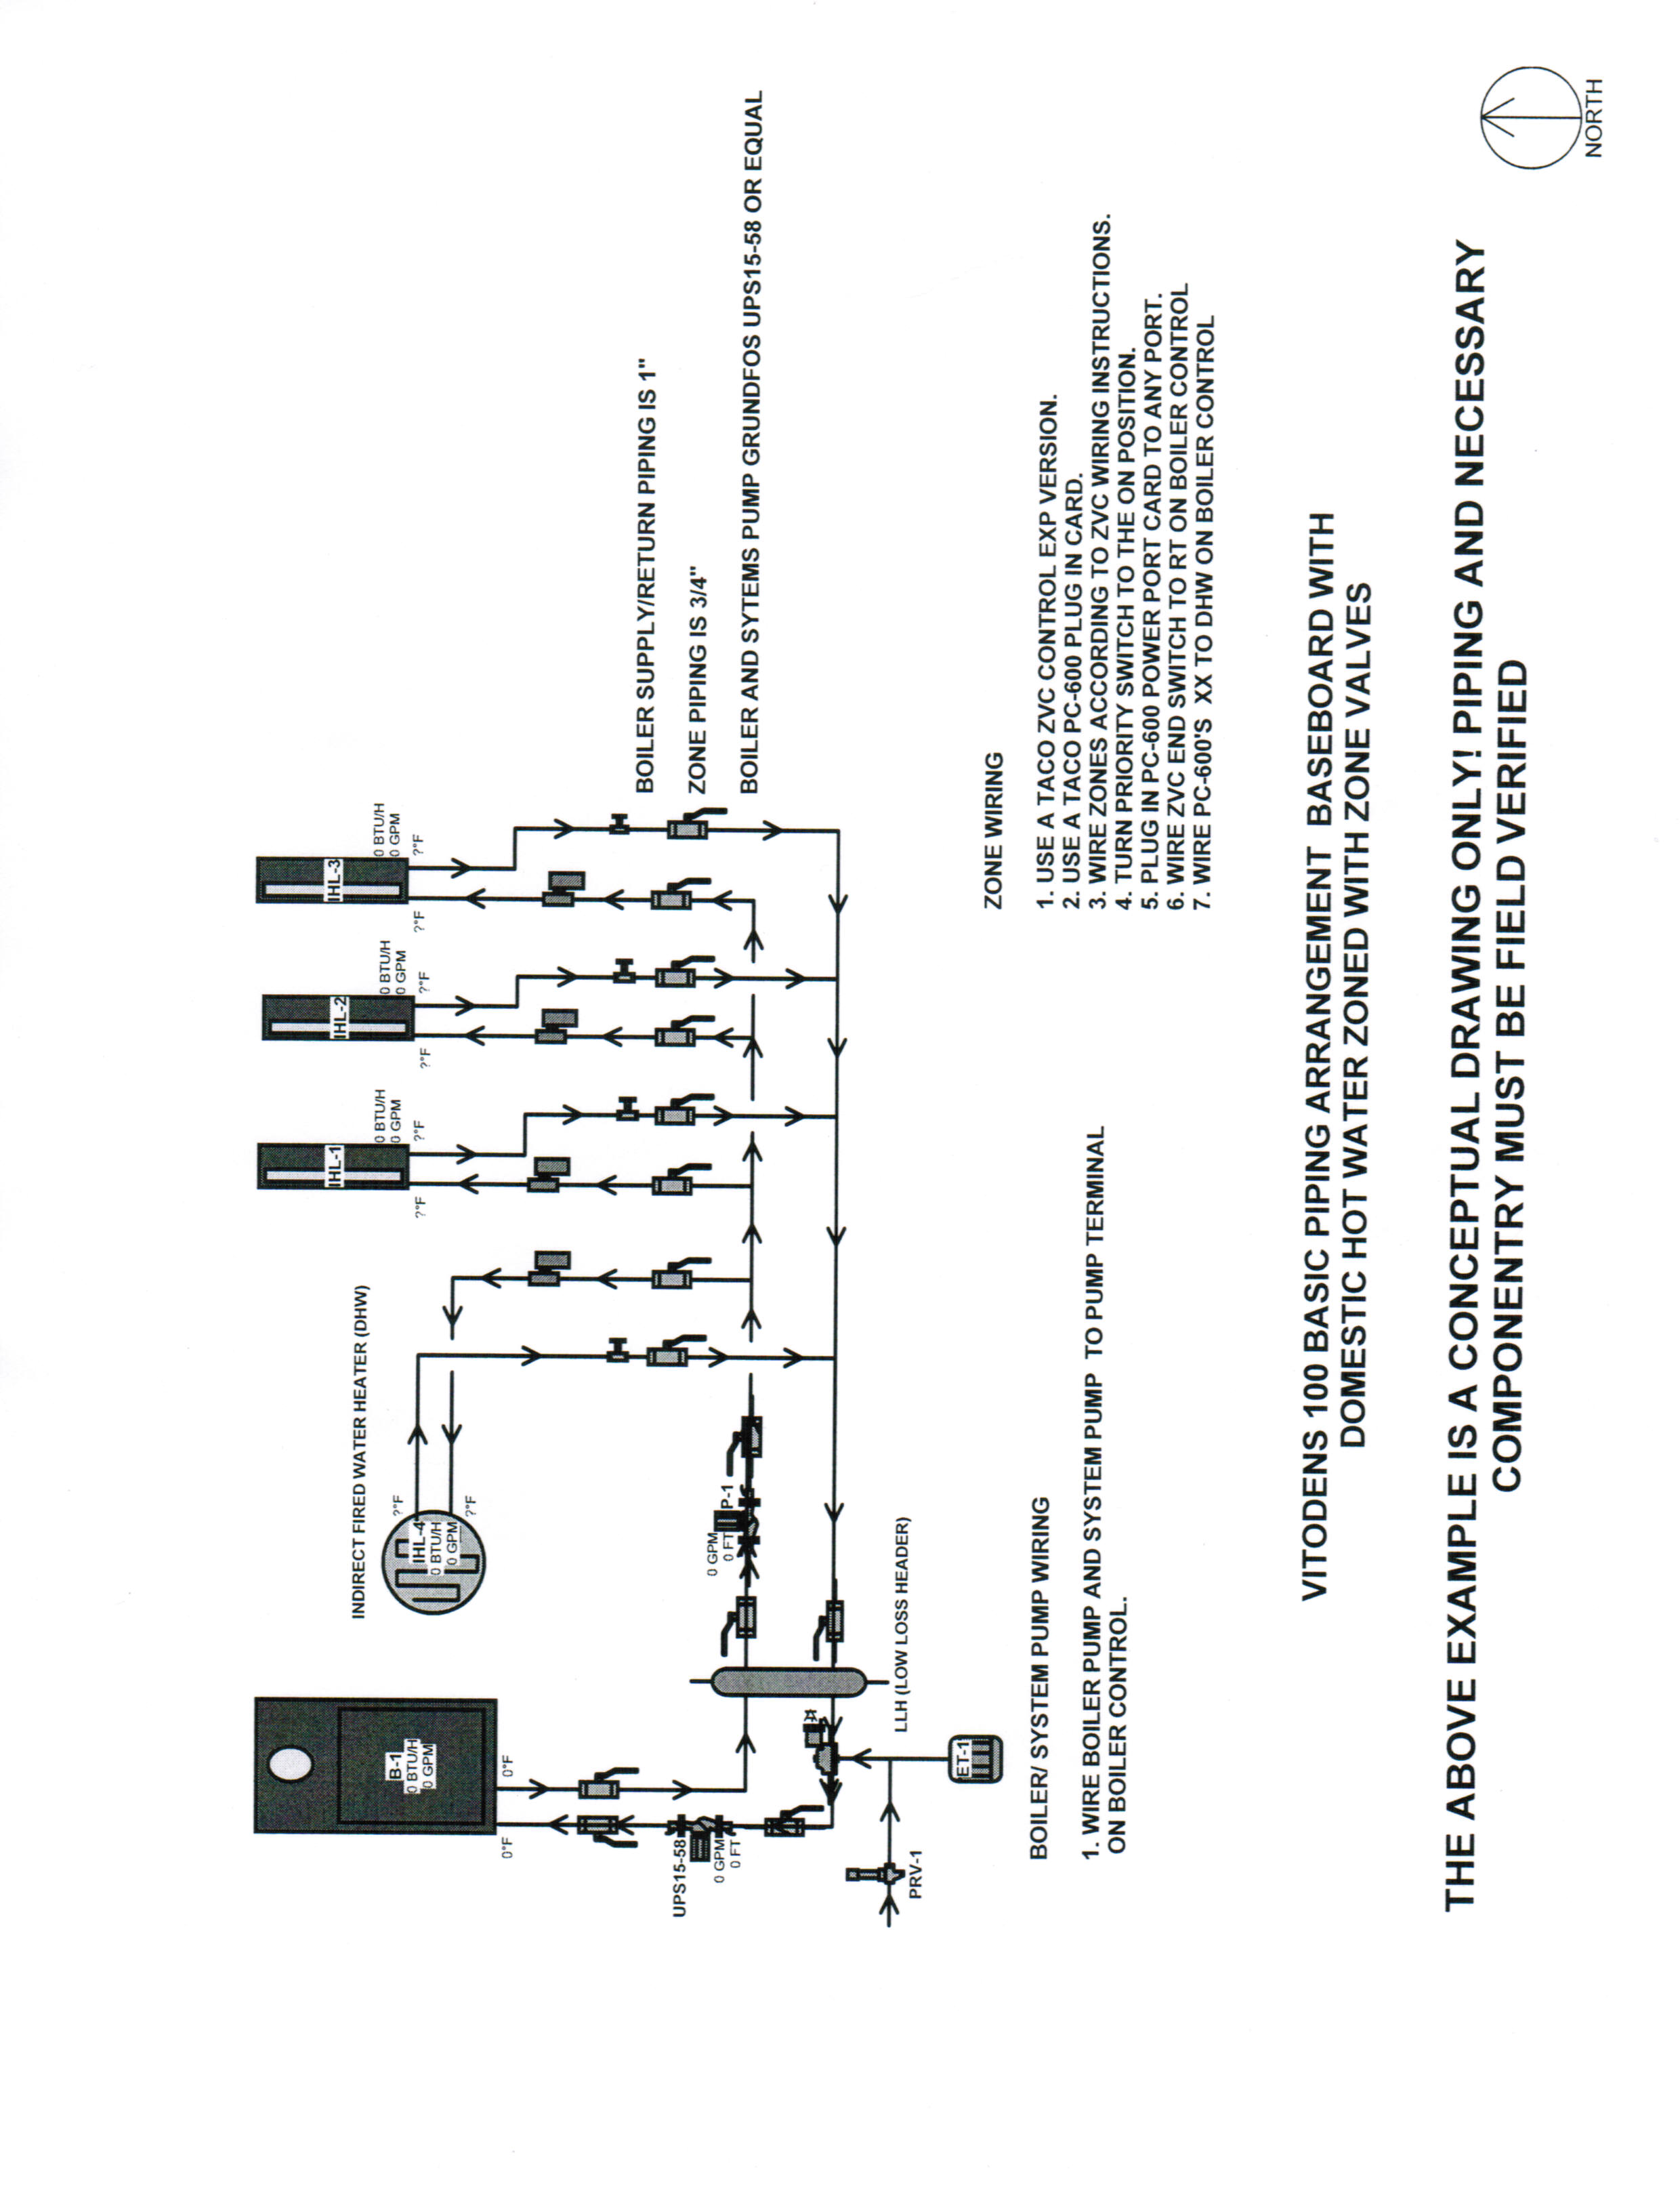 comfort zone 2 thermostat manual goes blank